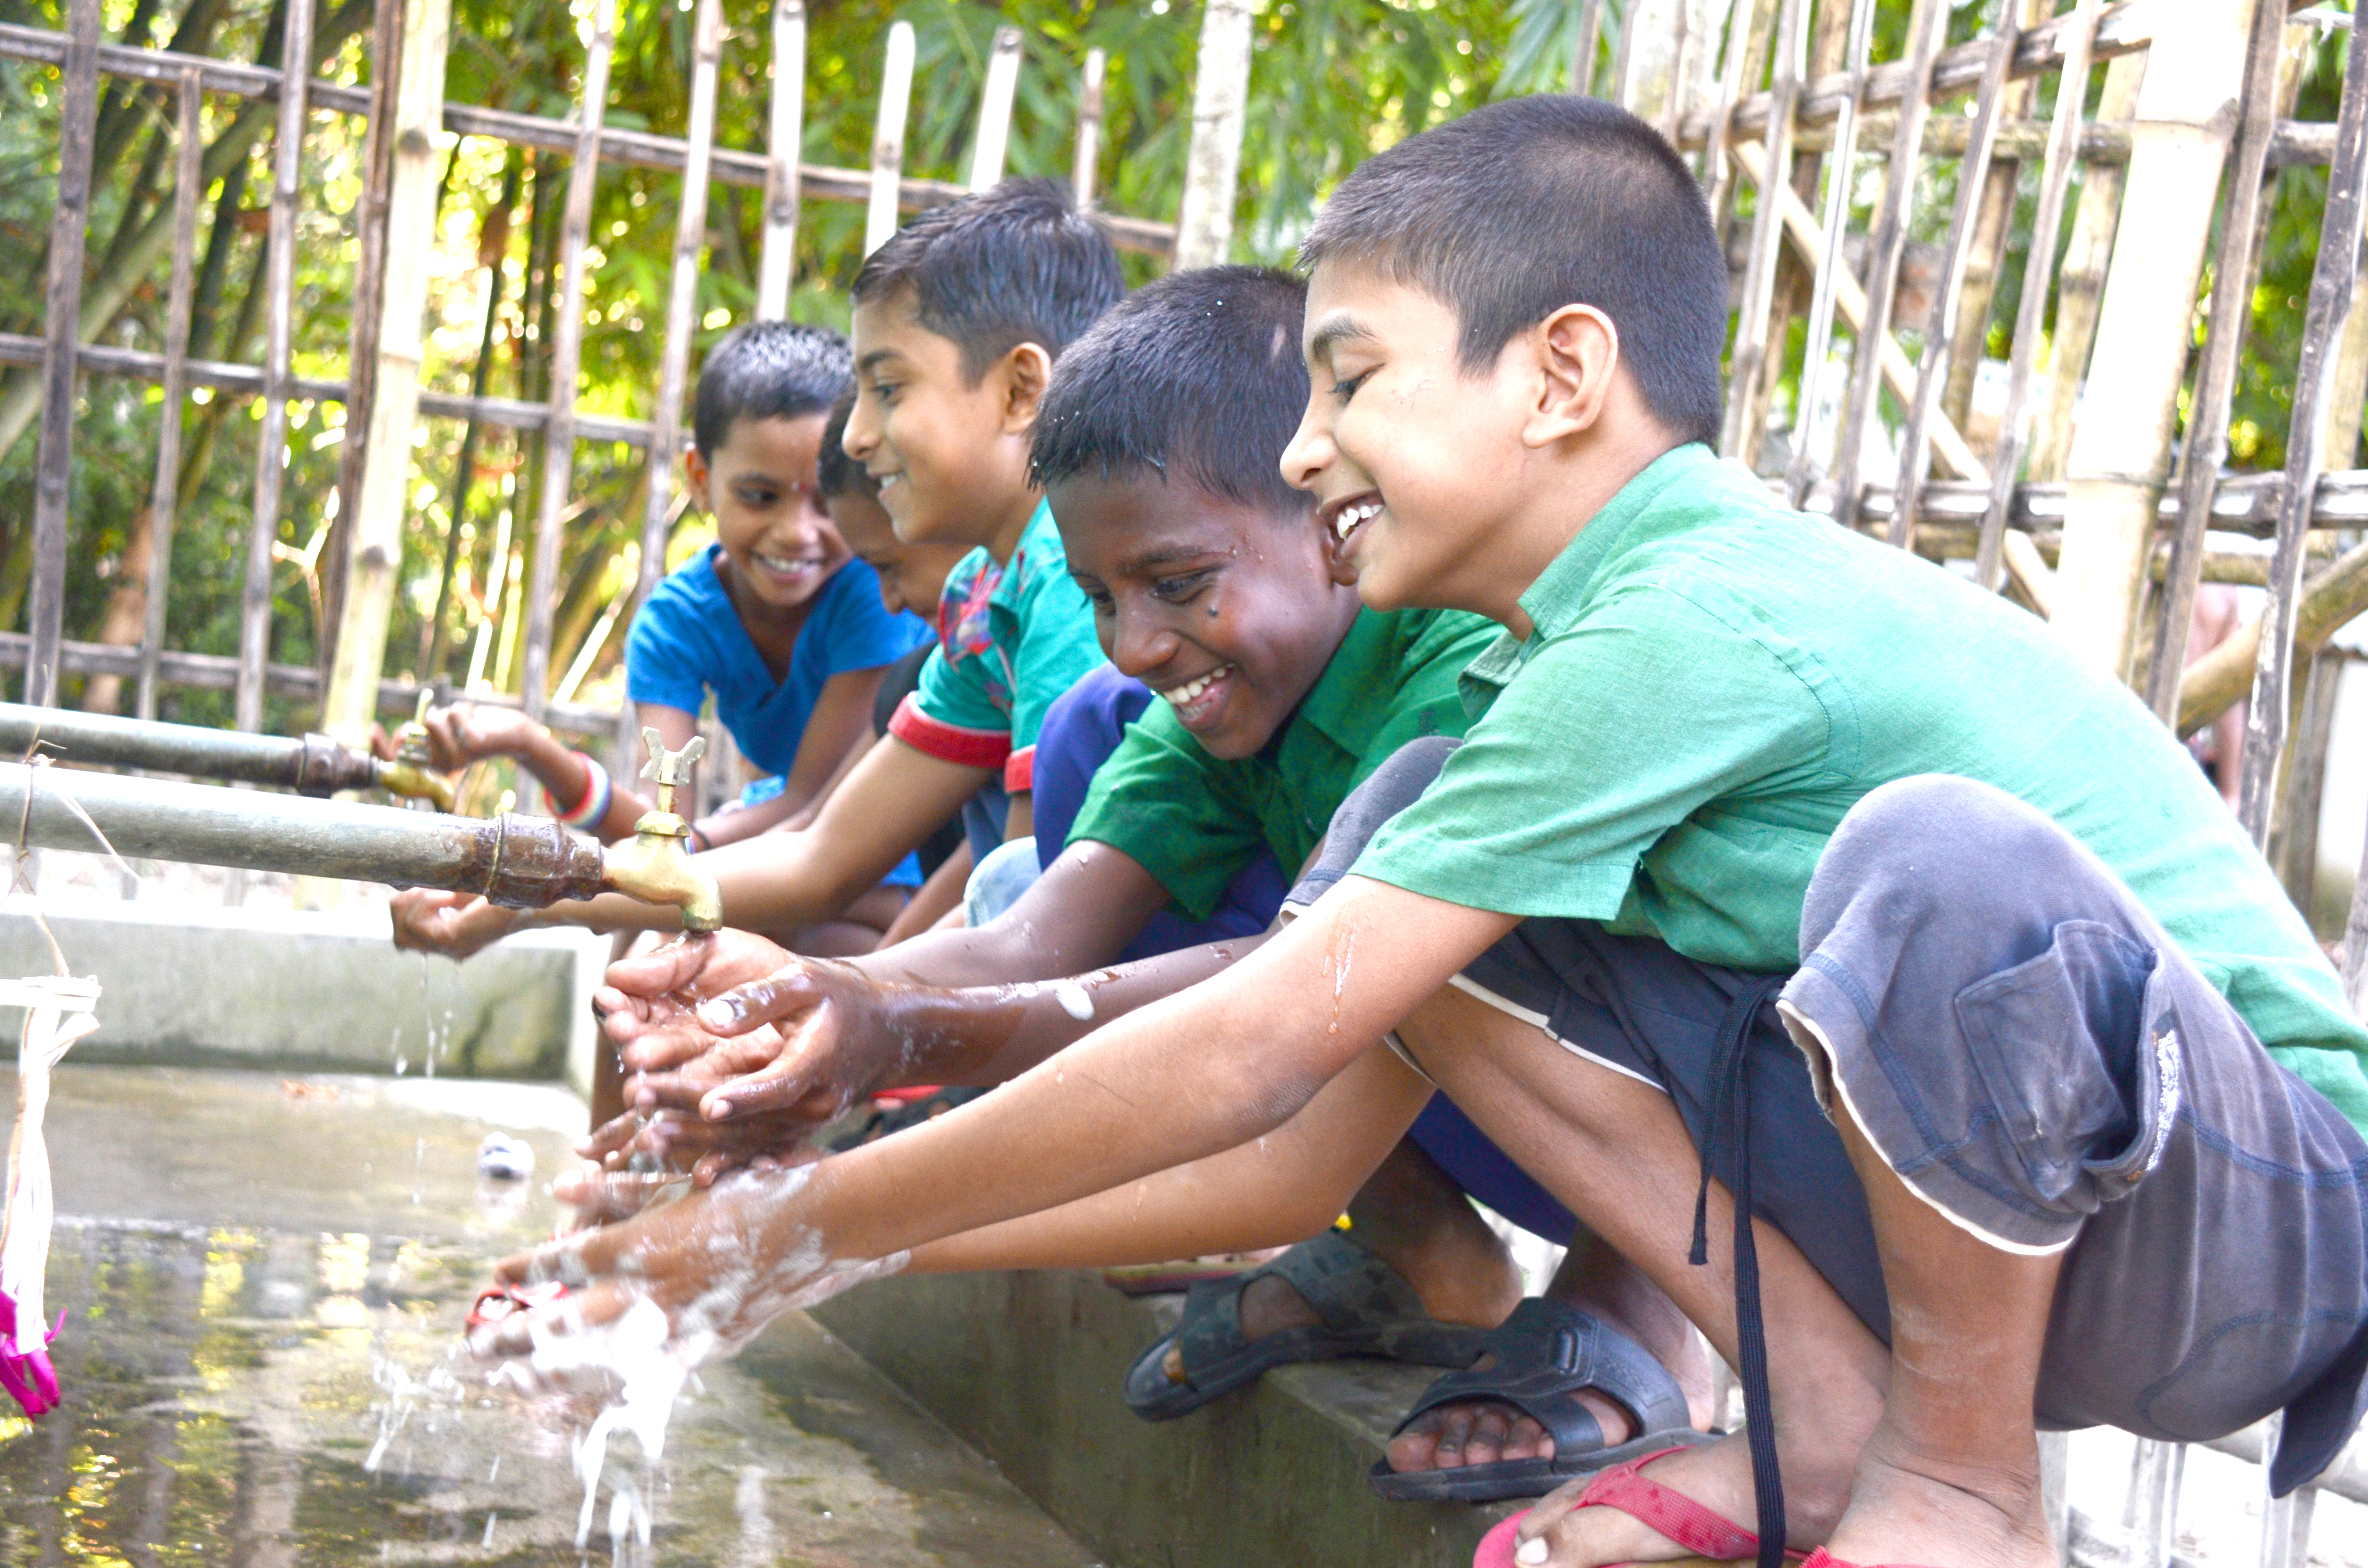 Children benefitted from WASH facilities and services in schools and communities.